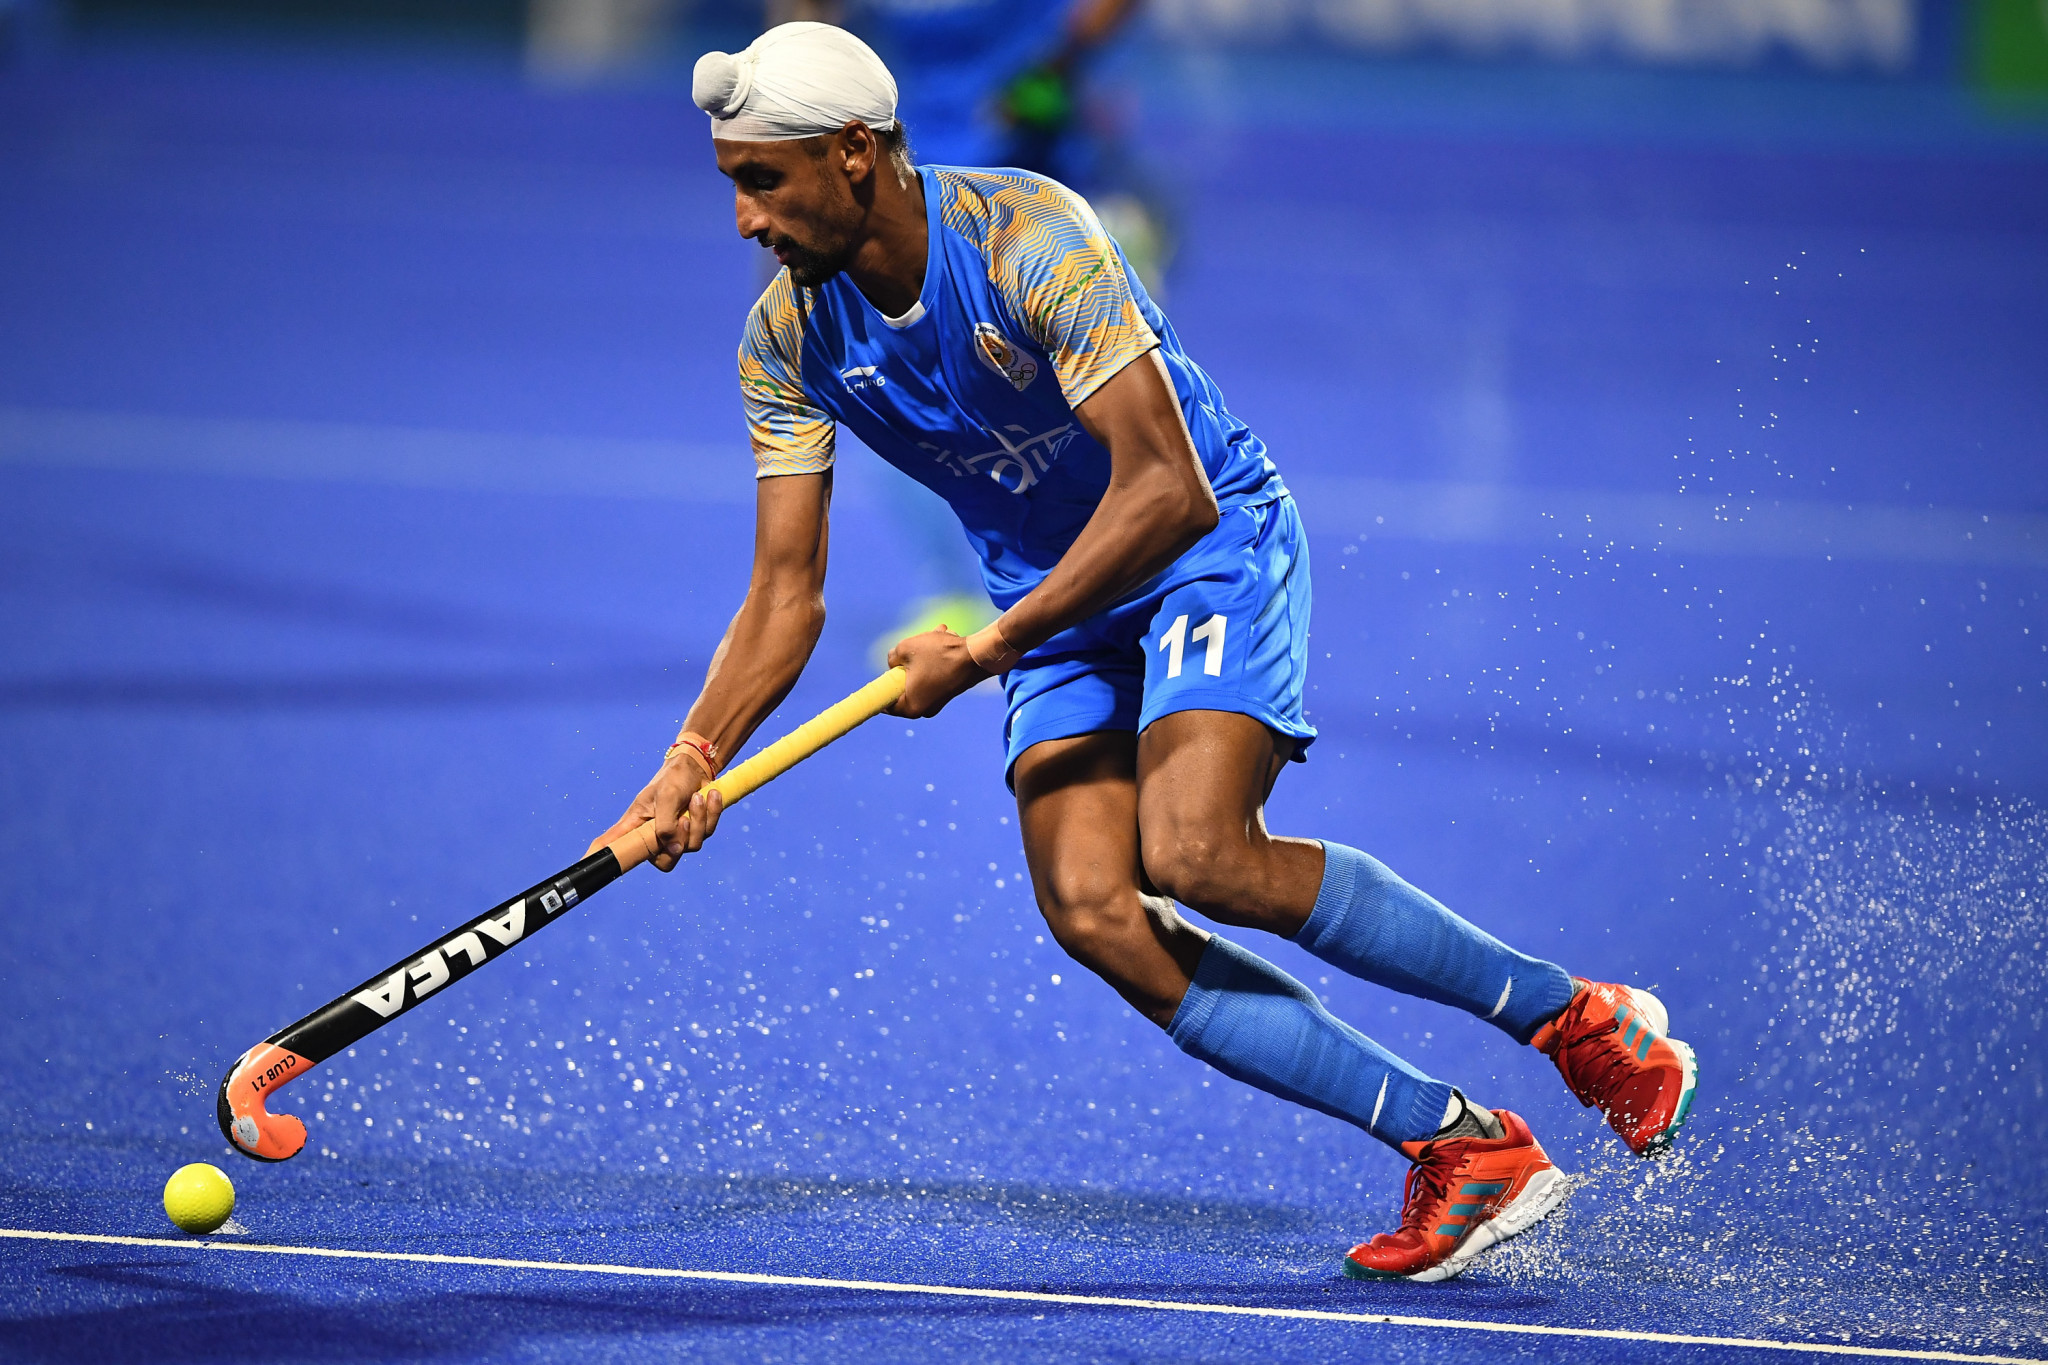 India thrash Japan to maintain strong start at Asian Hockey Champions Trophy